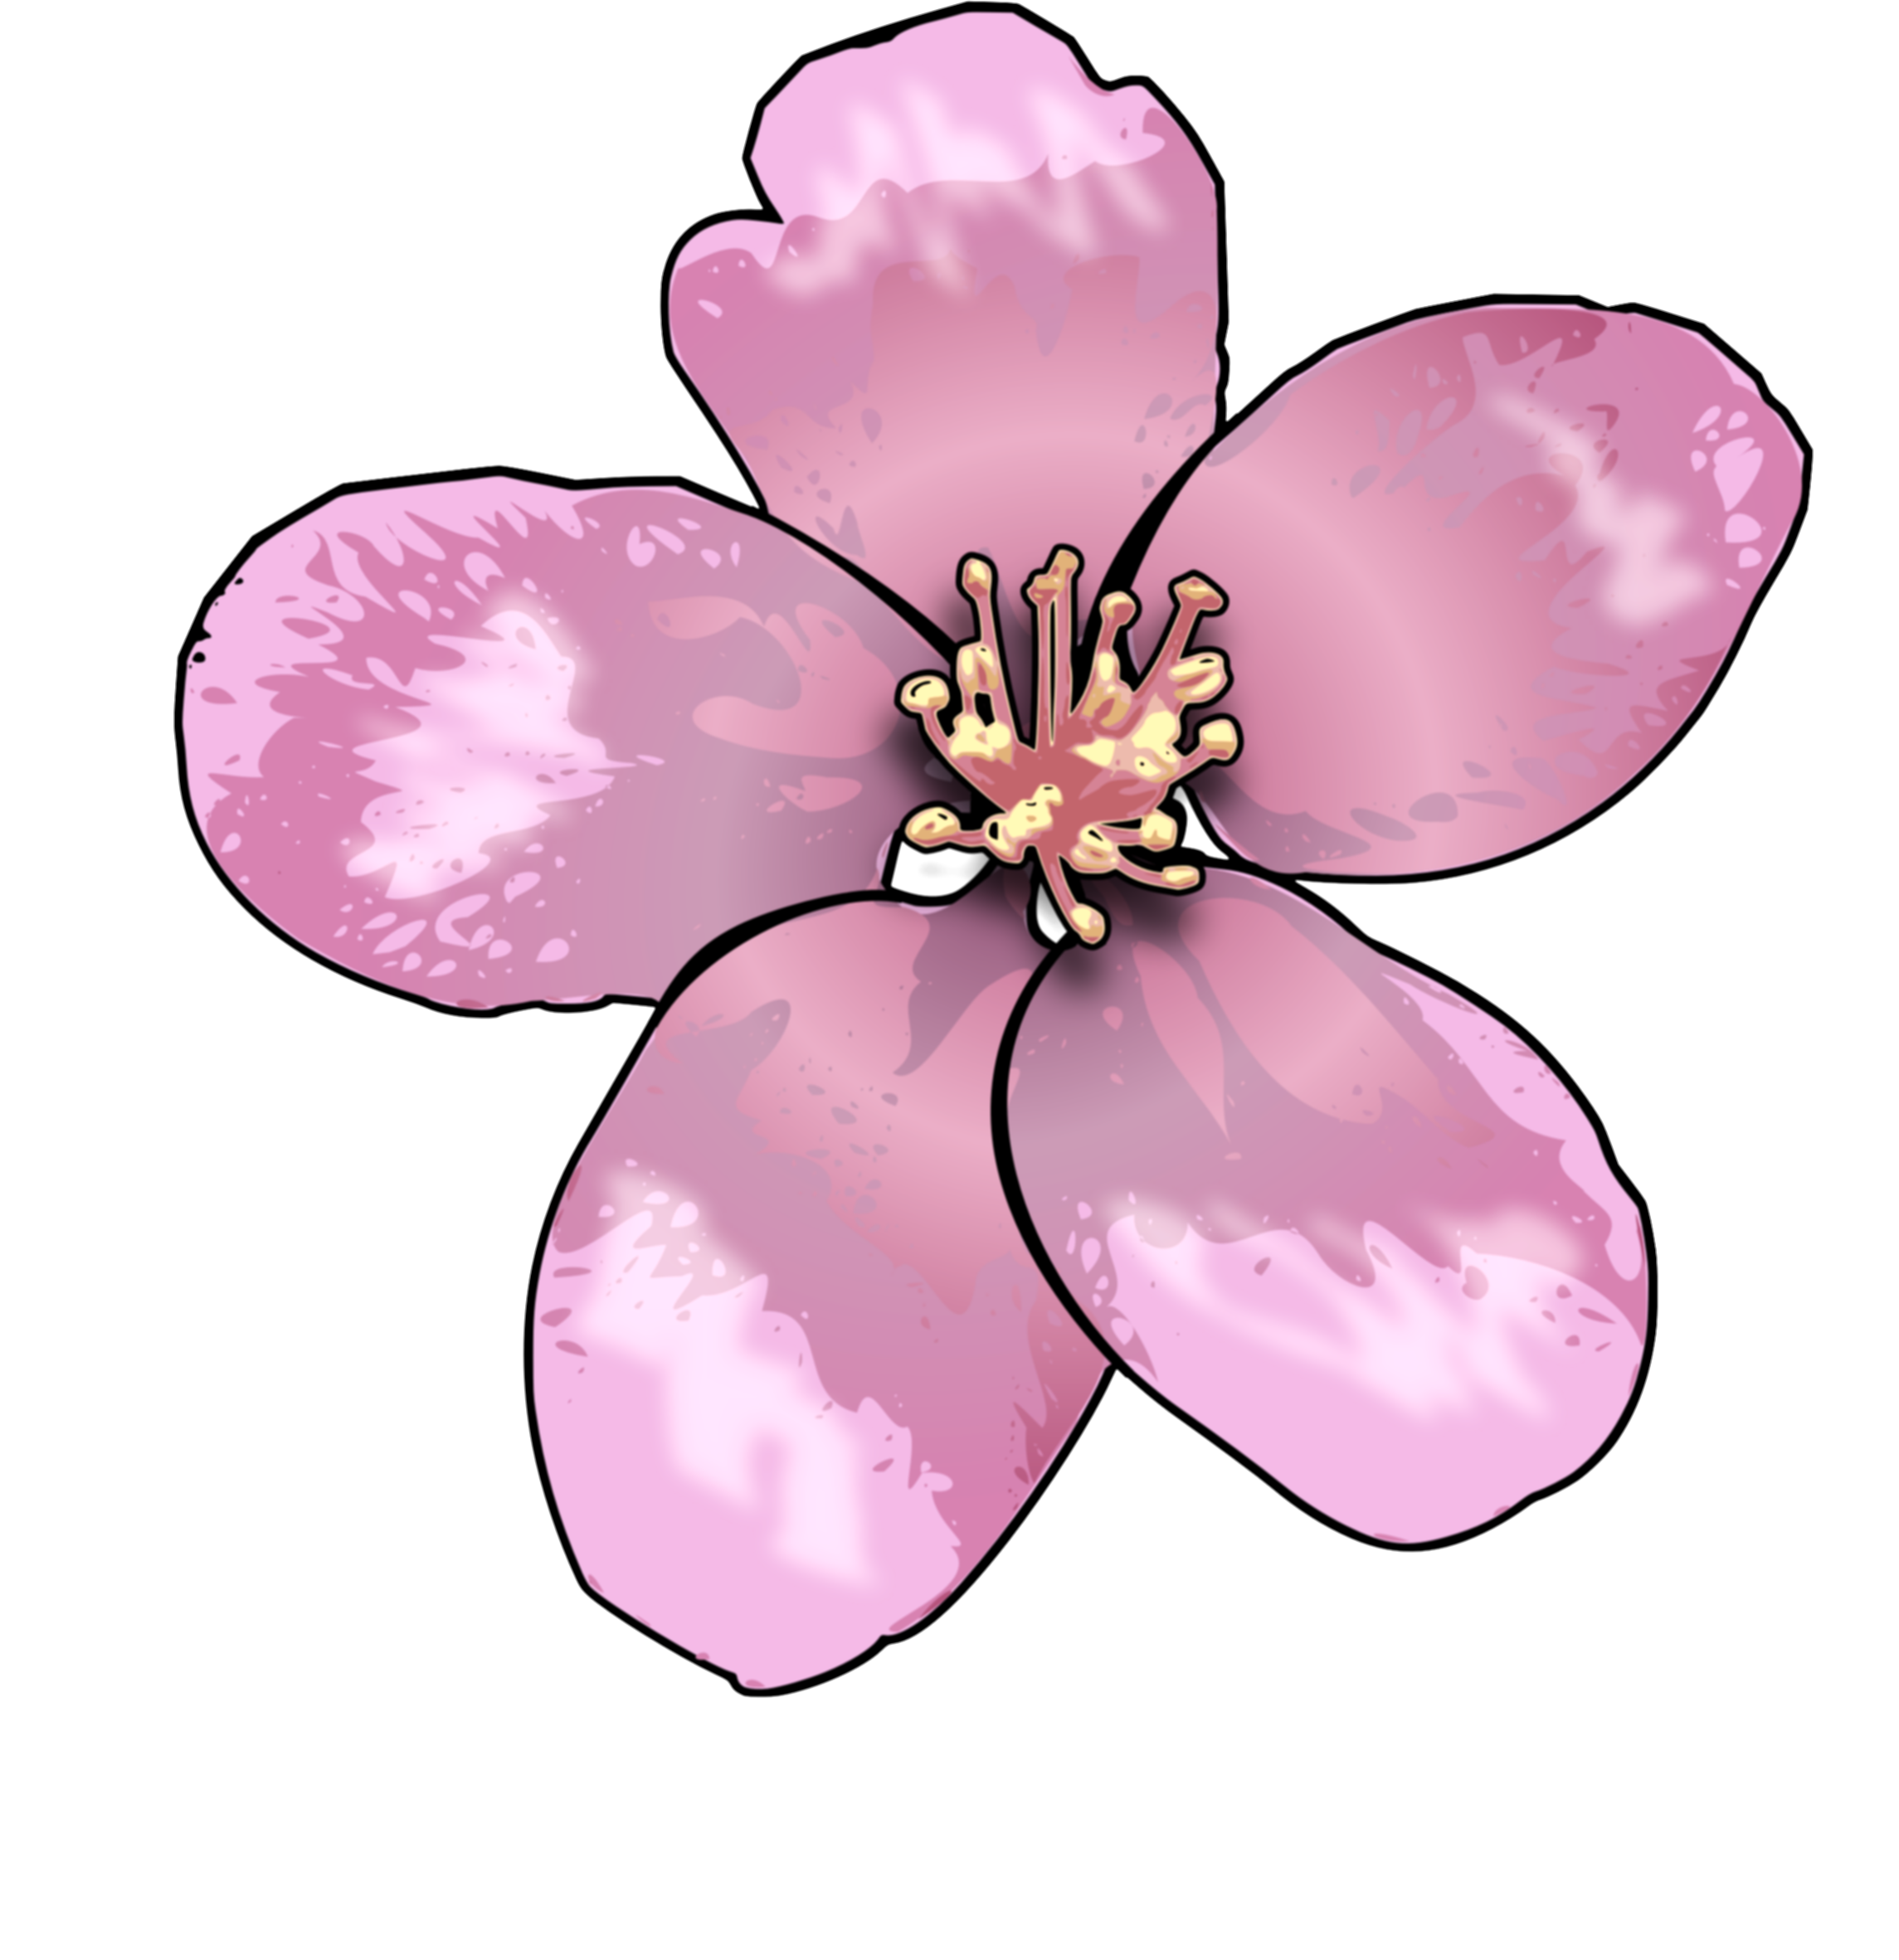 apple blossom png